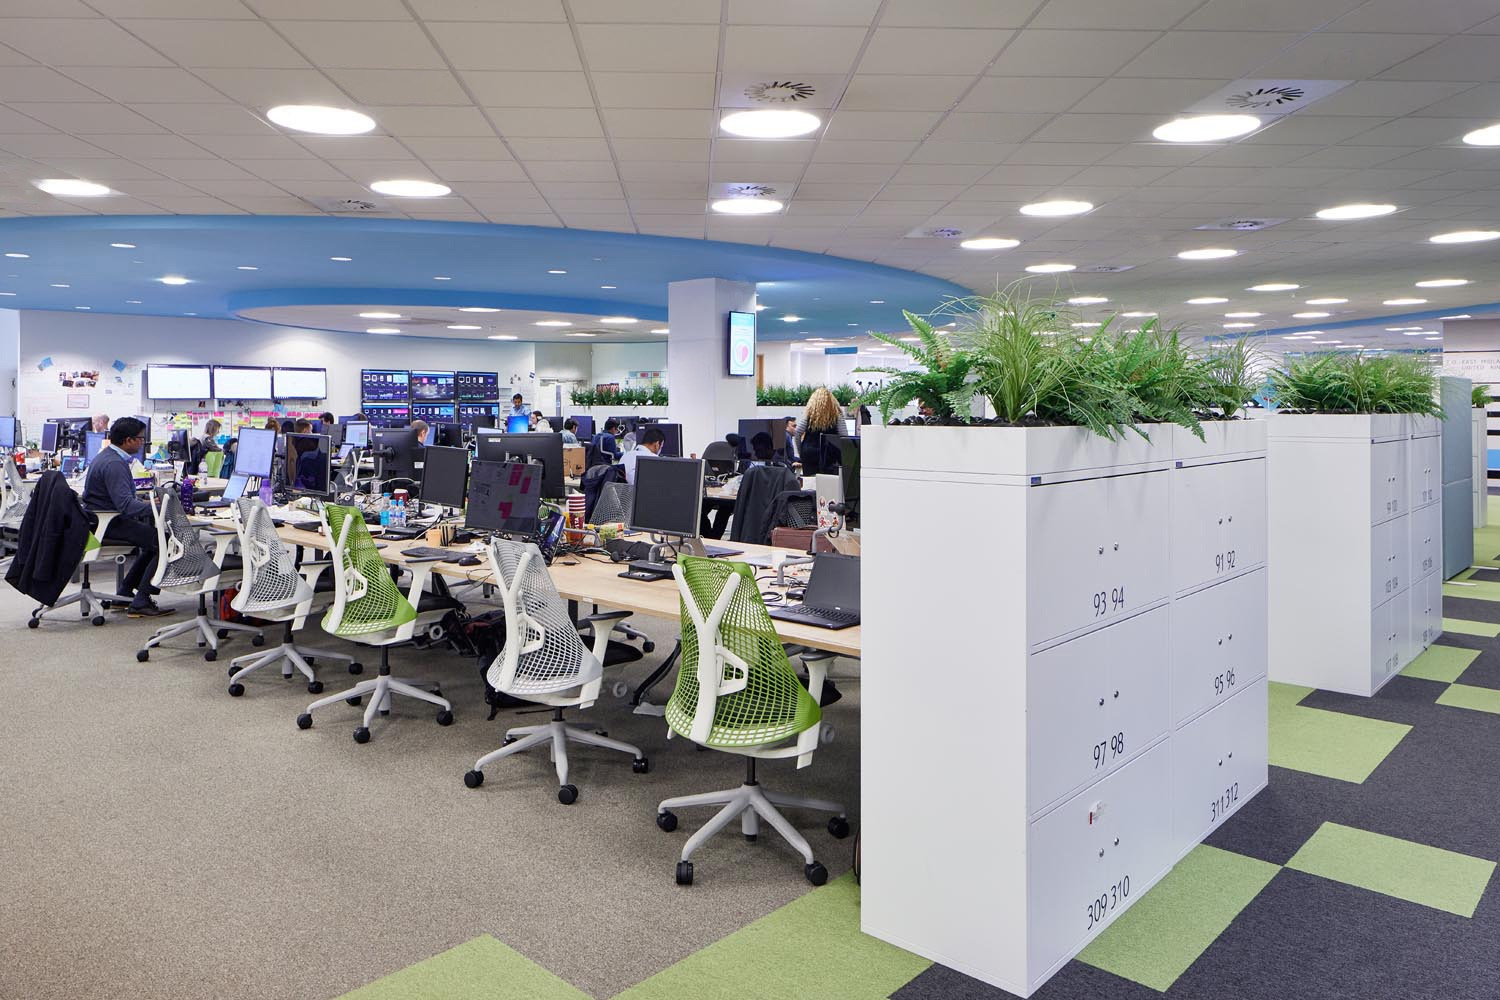 tui-luton-office-4